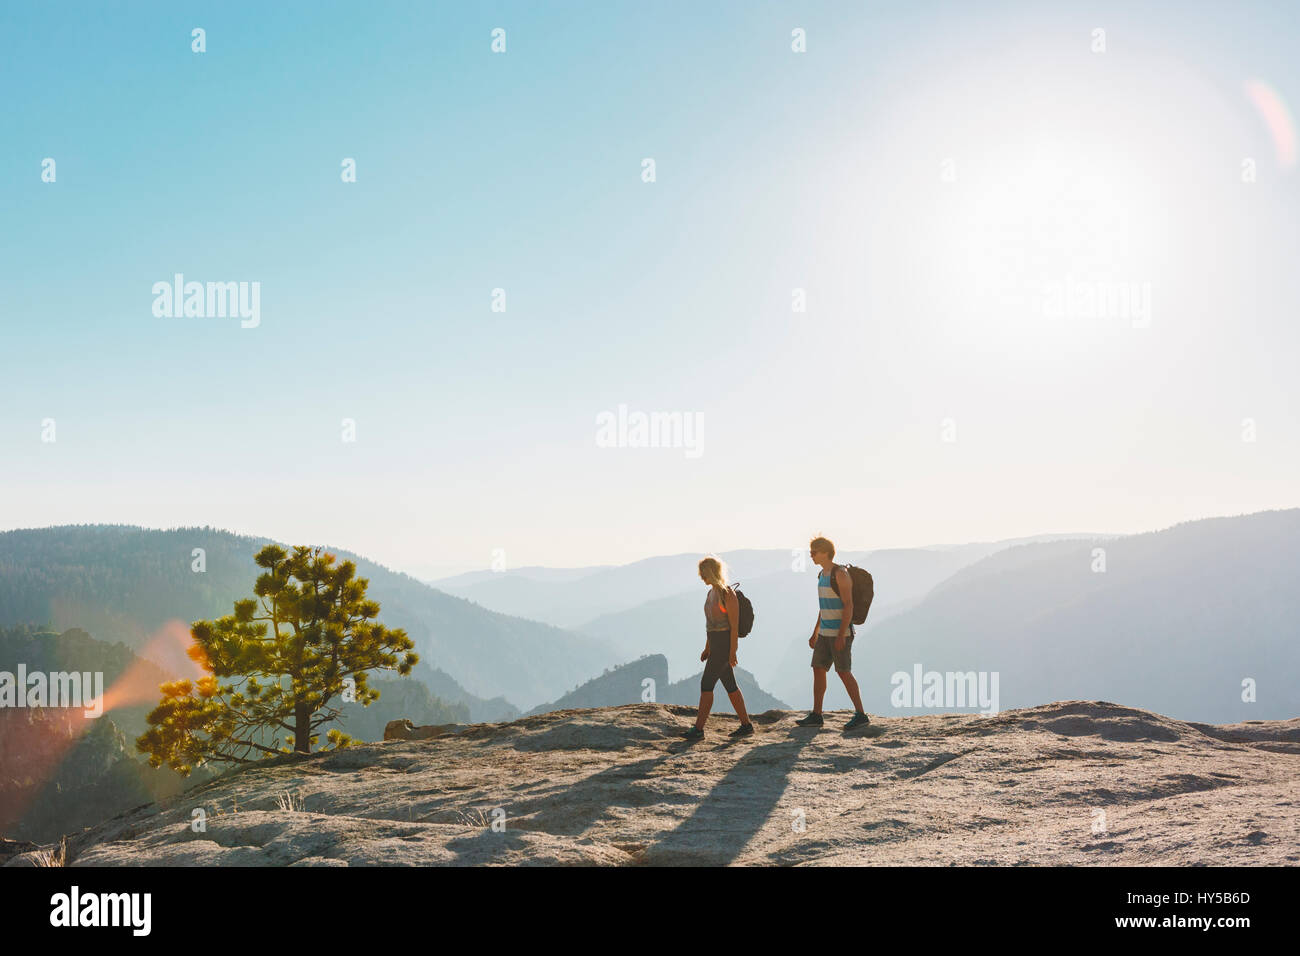 USA, California, Yosemite National Park, Man and woman at Taft Point - Stock Image